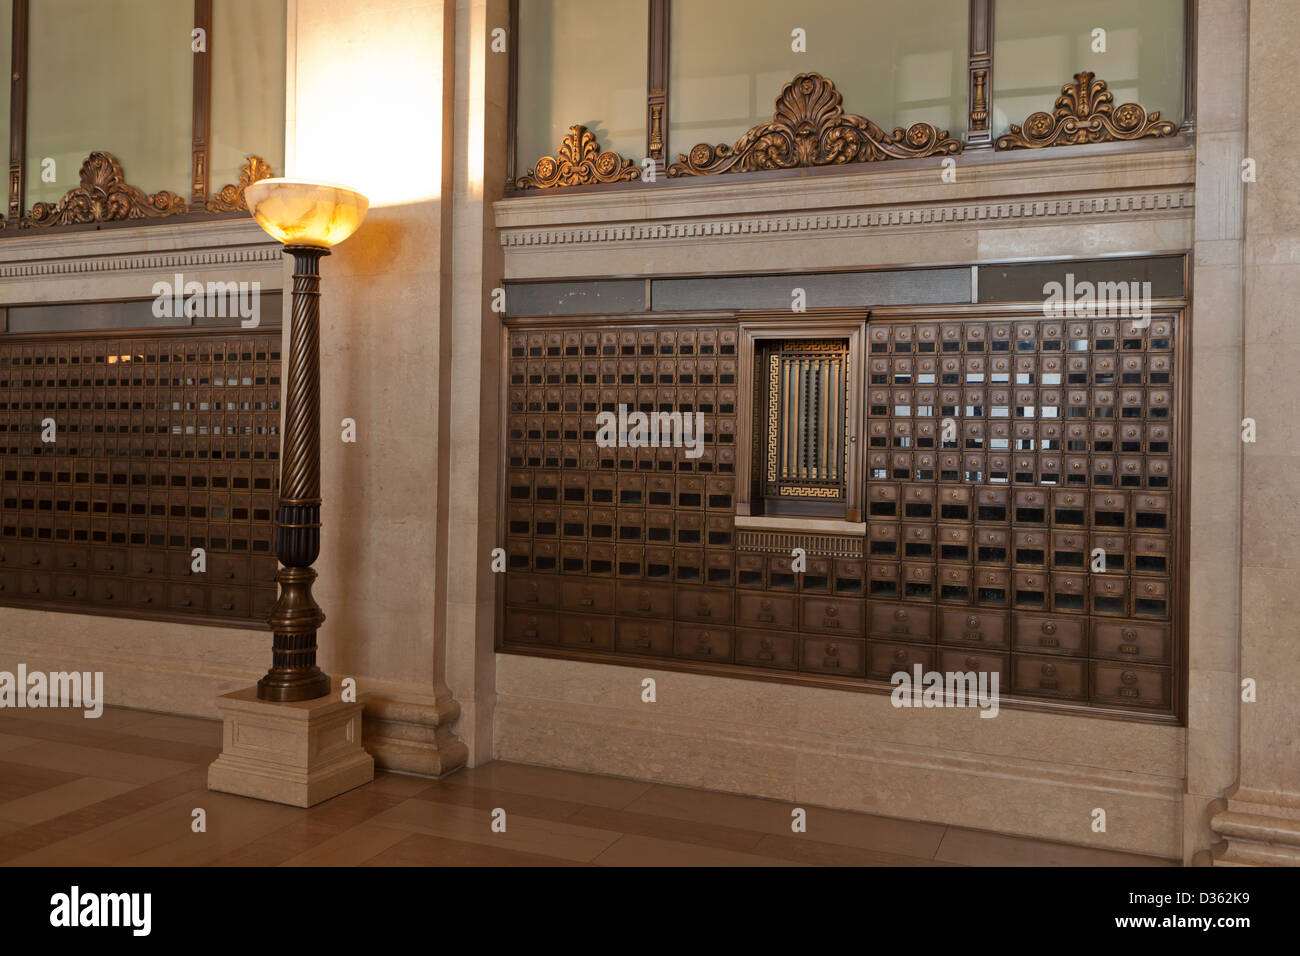 Ordinaire Vintage Post Office Boxes At The National Post Office   Washington, DC    Stock Image